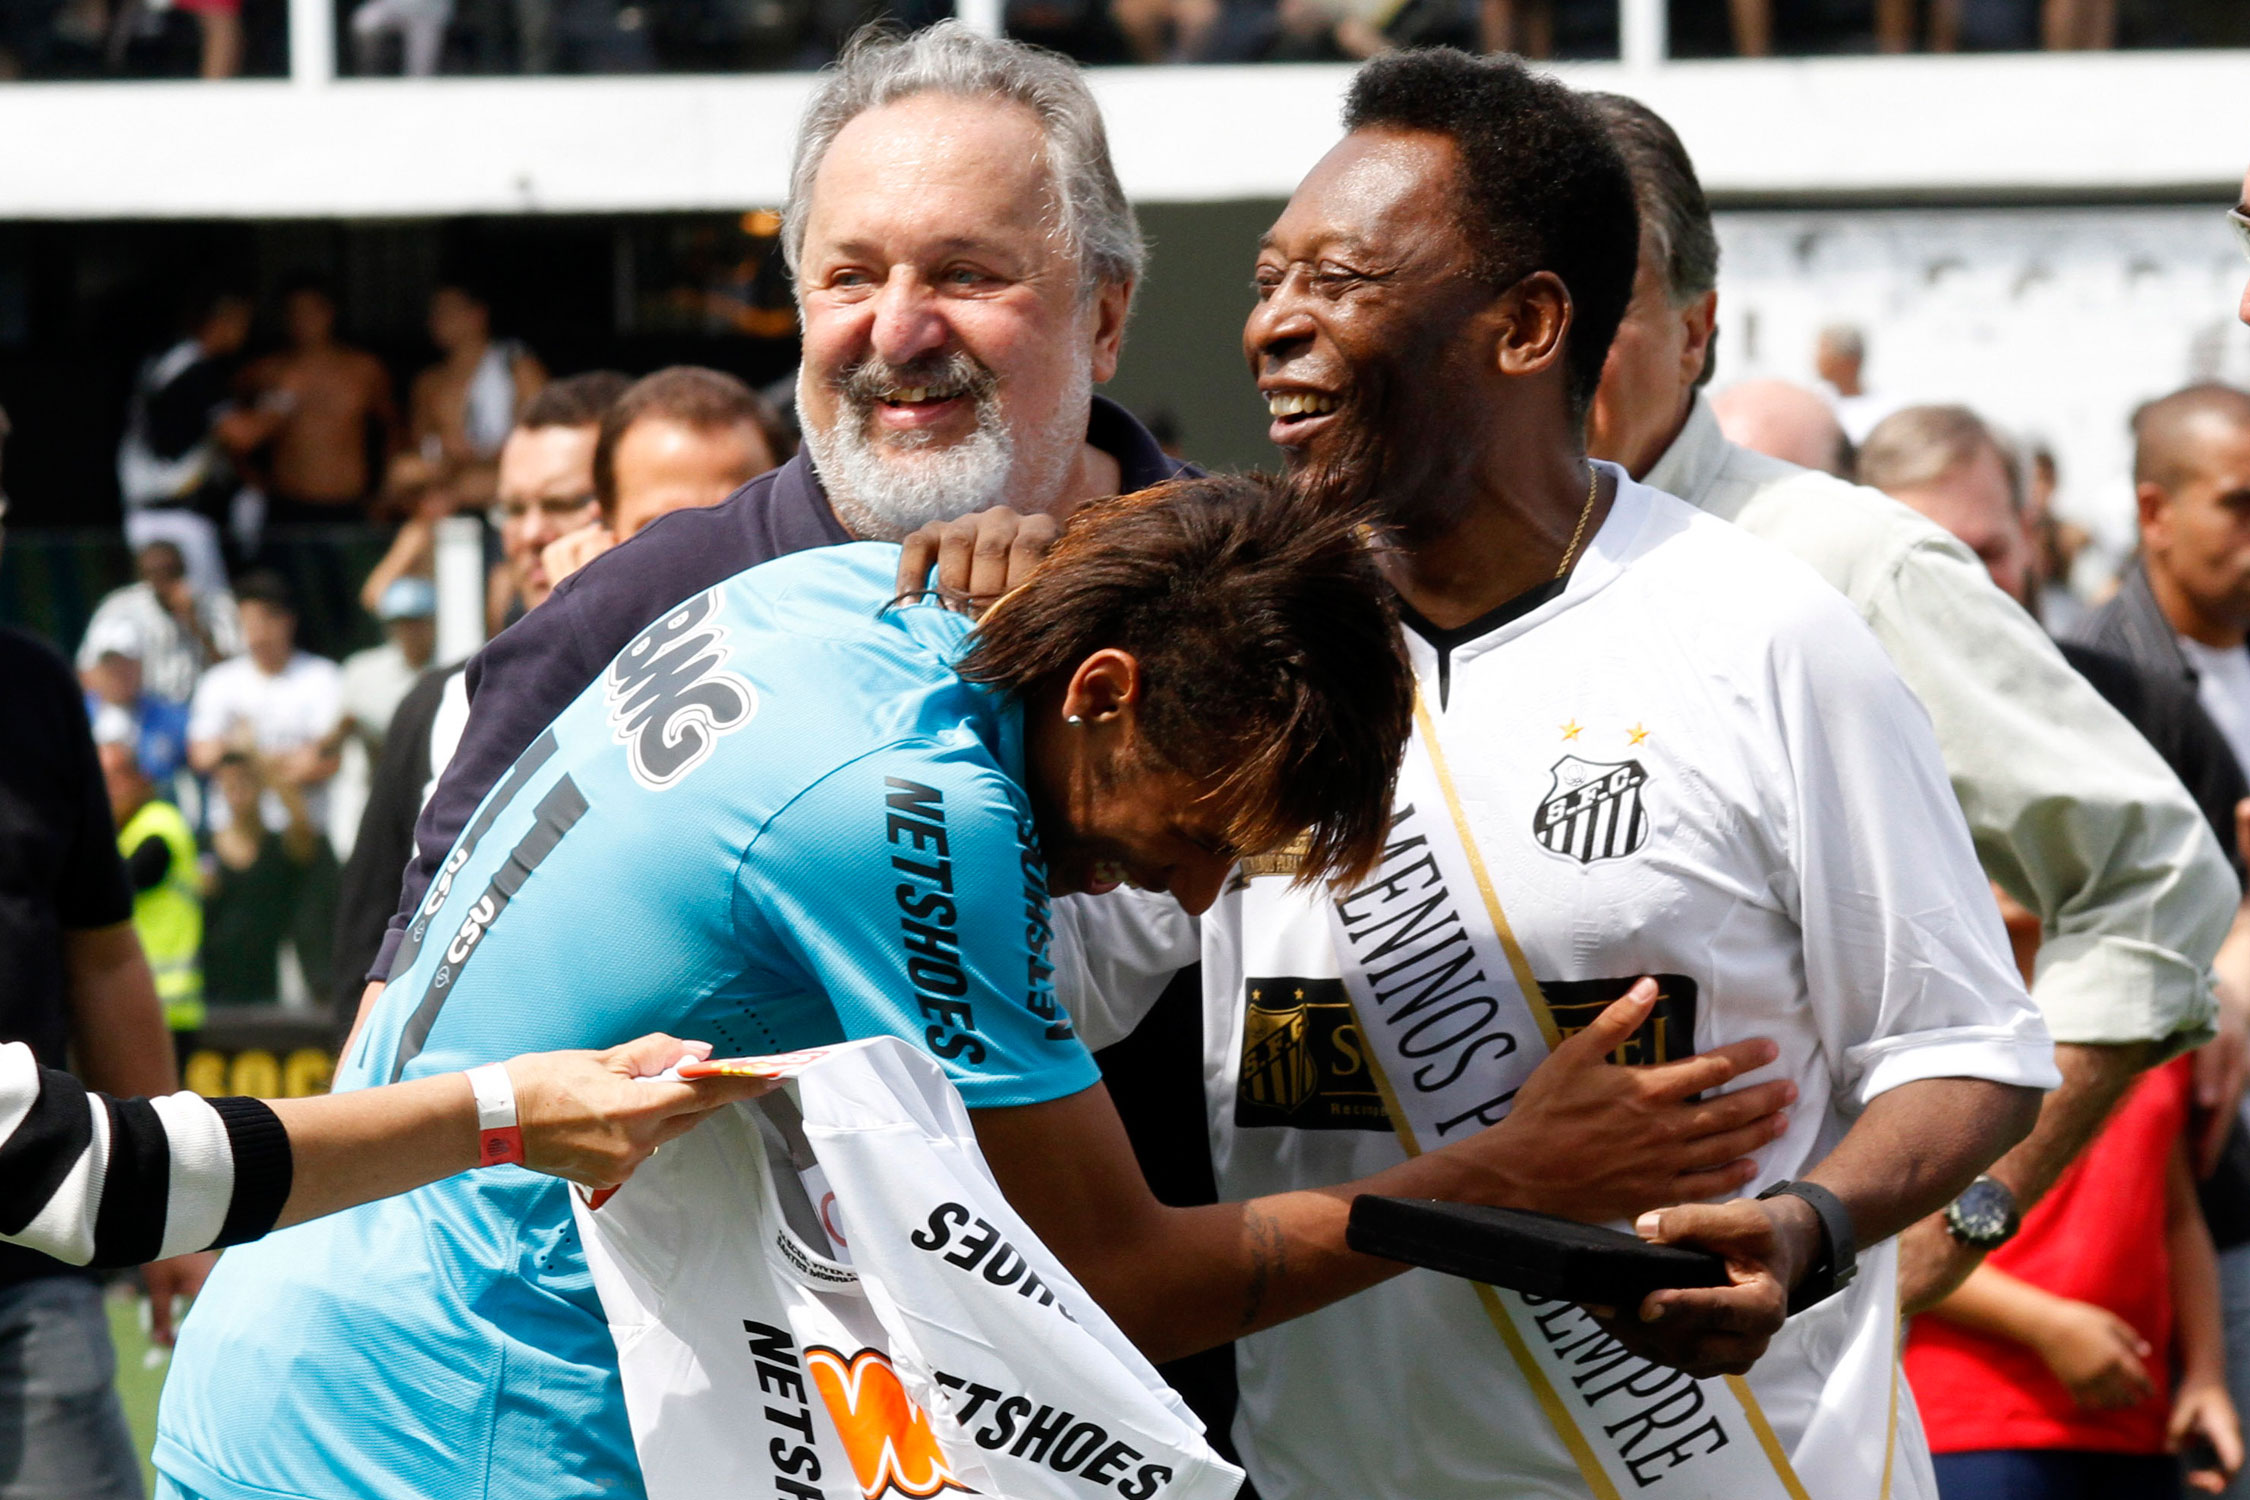 Brazil's past and present: Pele and Neymar at a Santos FC commemoration match in 2012.